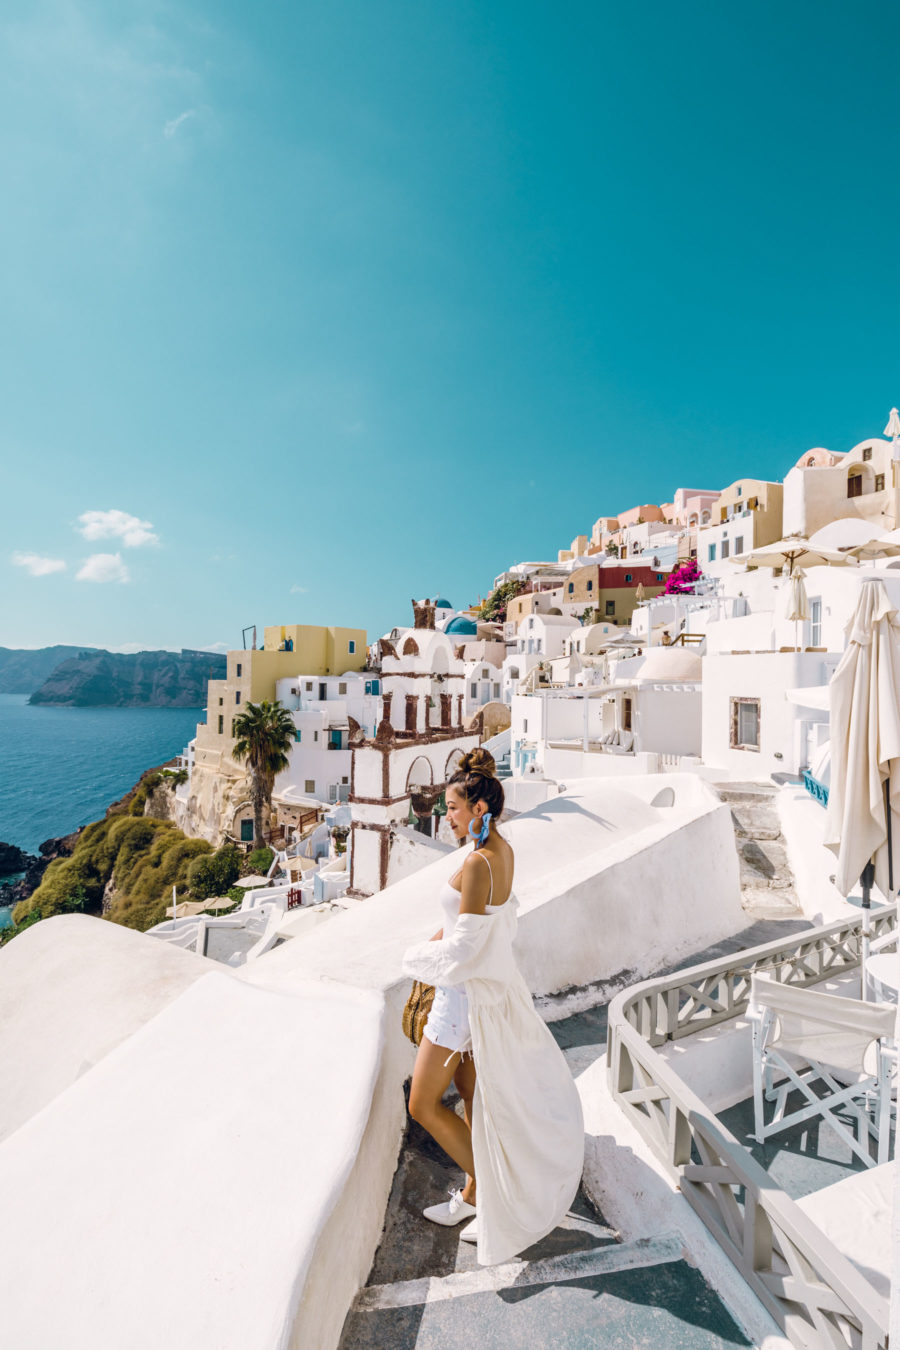 Most Instagrammable Spots In Santorini // NotJessFashion.com